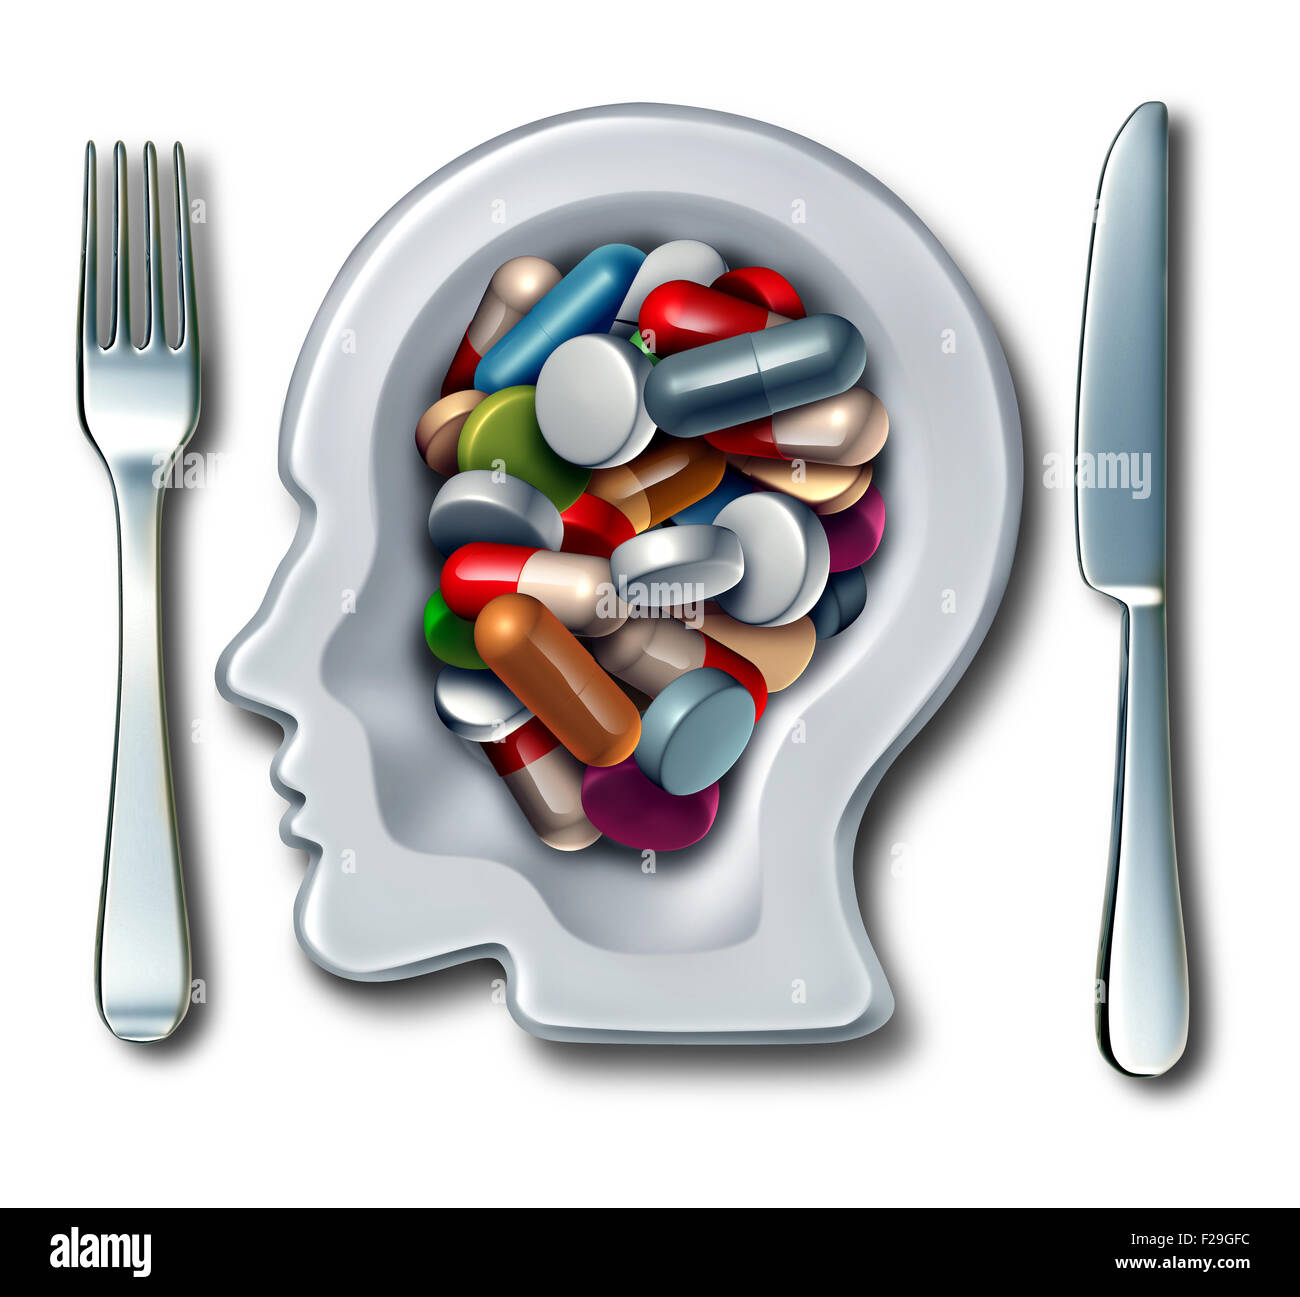 Brain drugs and neuroscience medicine concept as a dinner plate with knife and fork shaped as a human head with - Stock Image